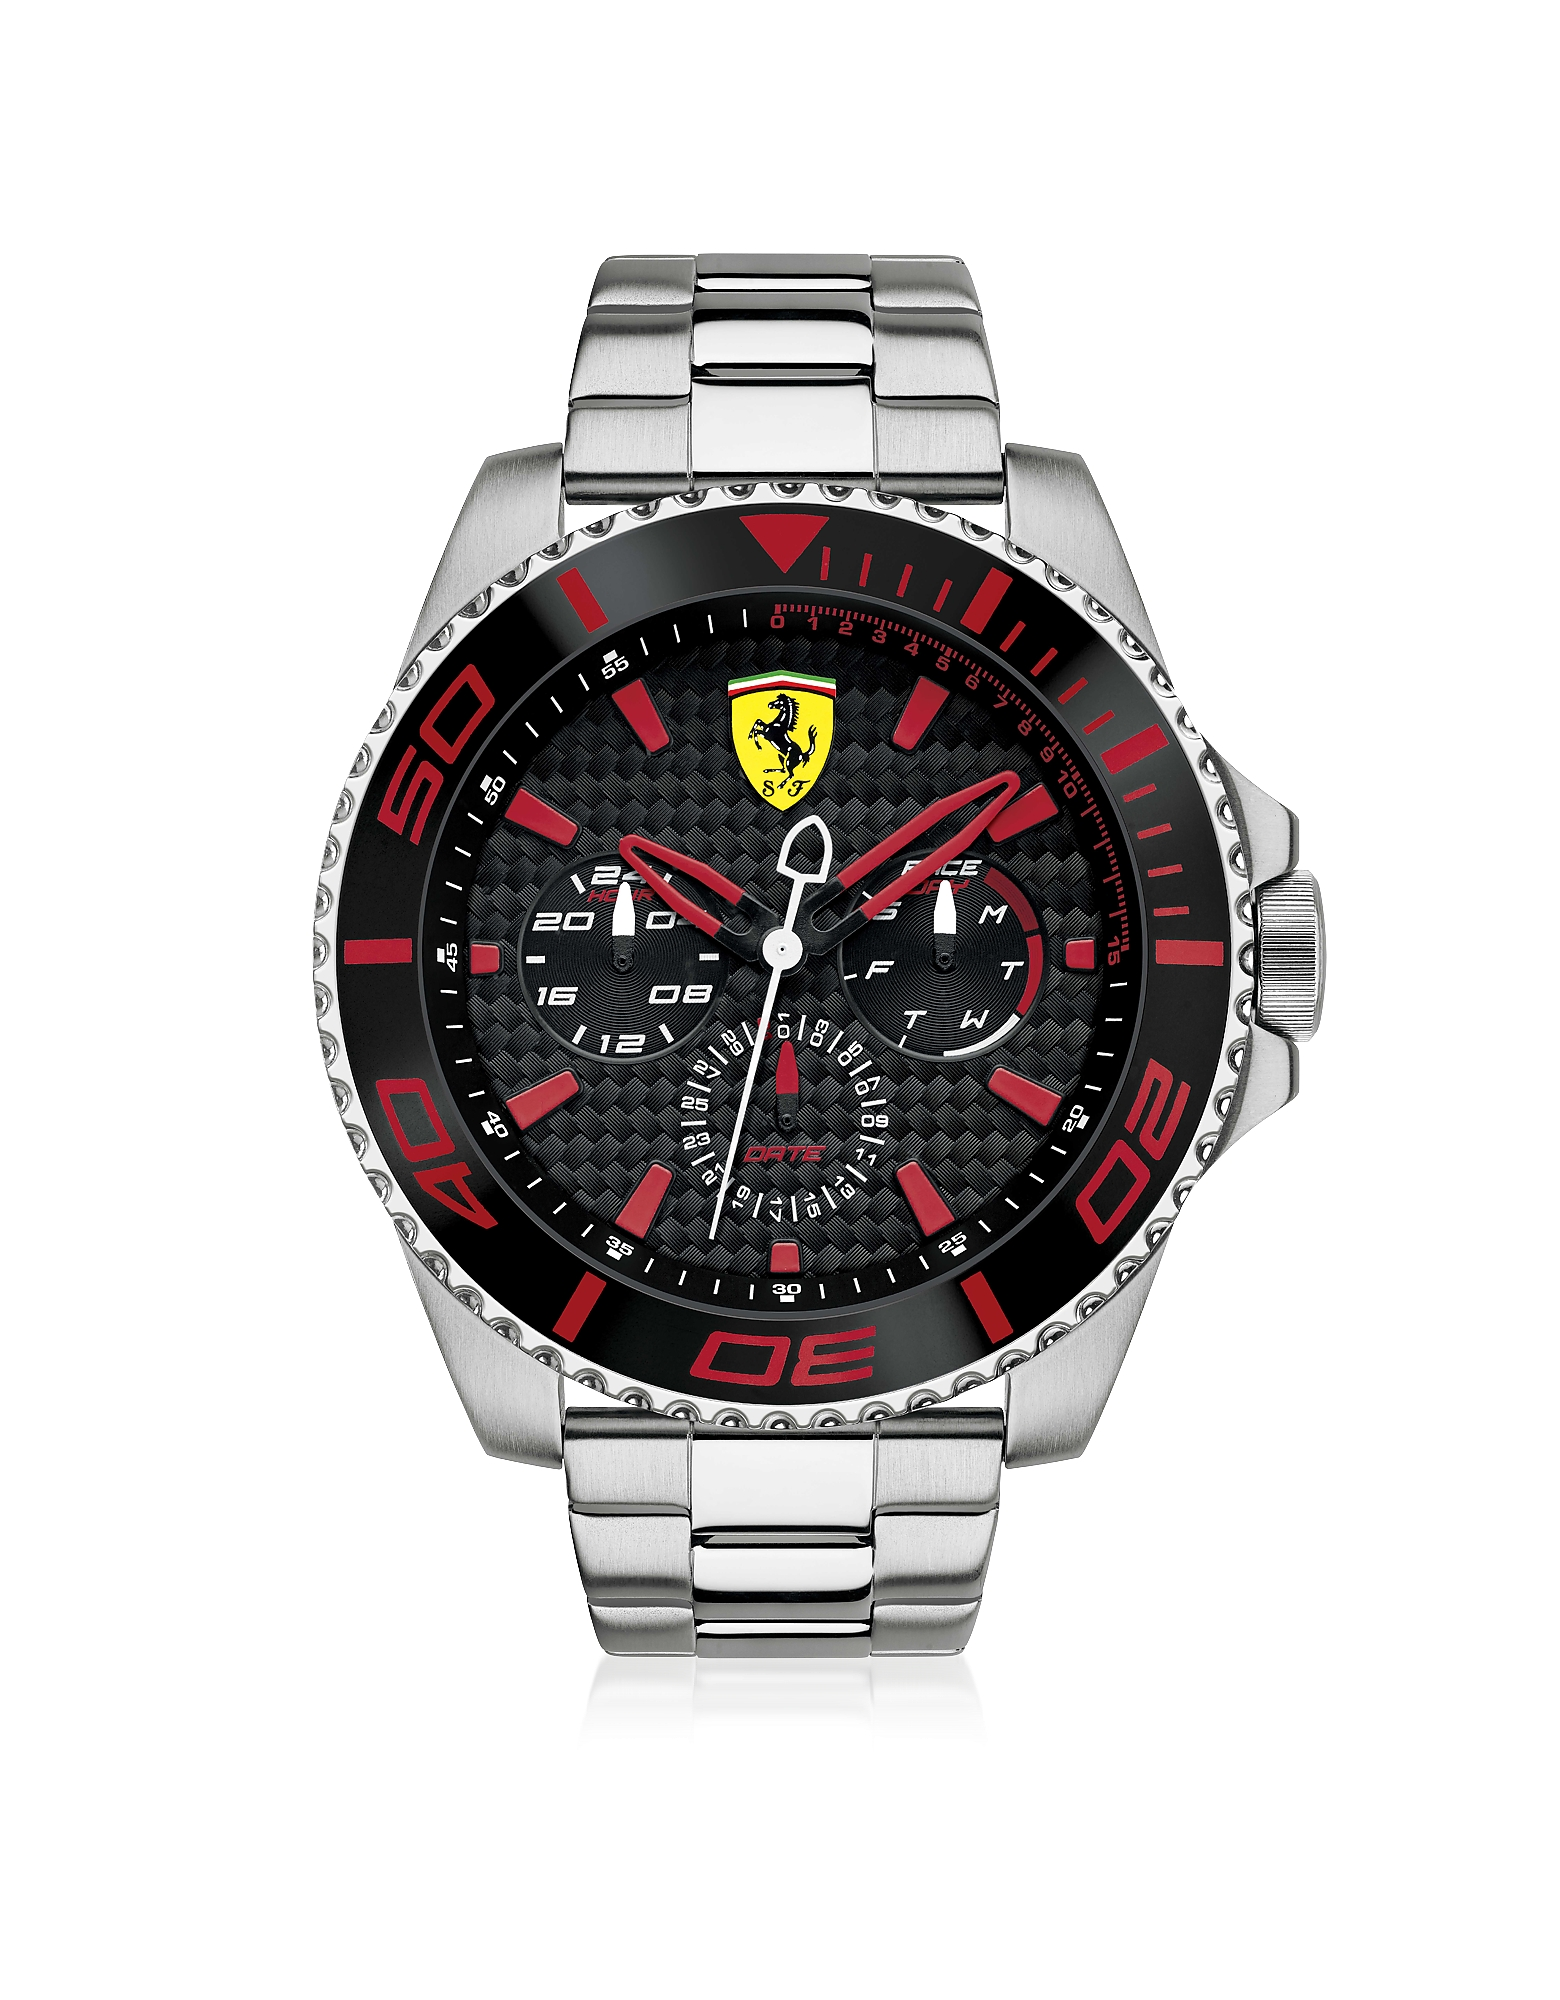 Ferrari Men's Watches, XX Kers Silver and Red Stainless Steel Men's Watch